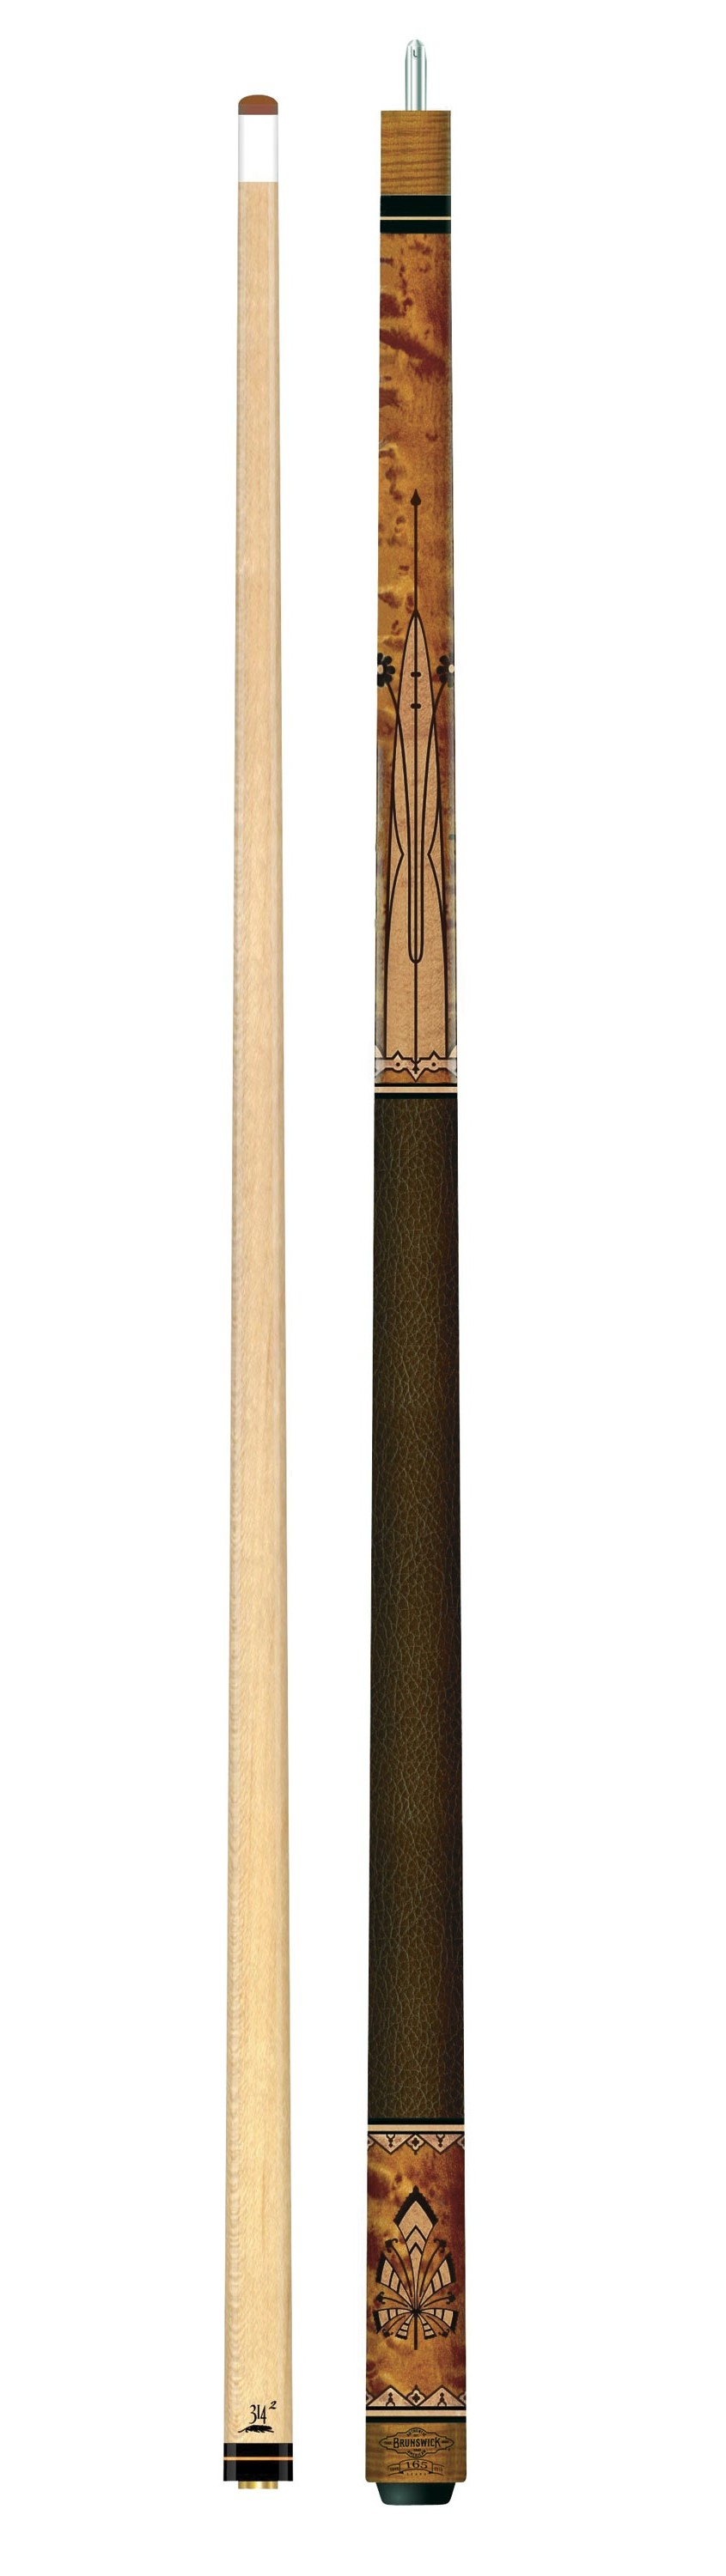 Brunswick Limited Edition Exposition Novelty Cue